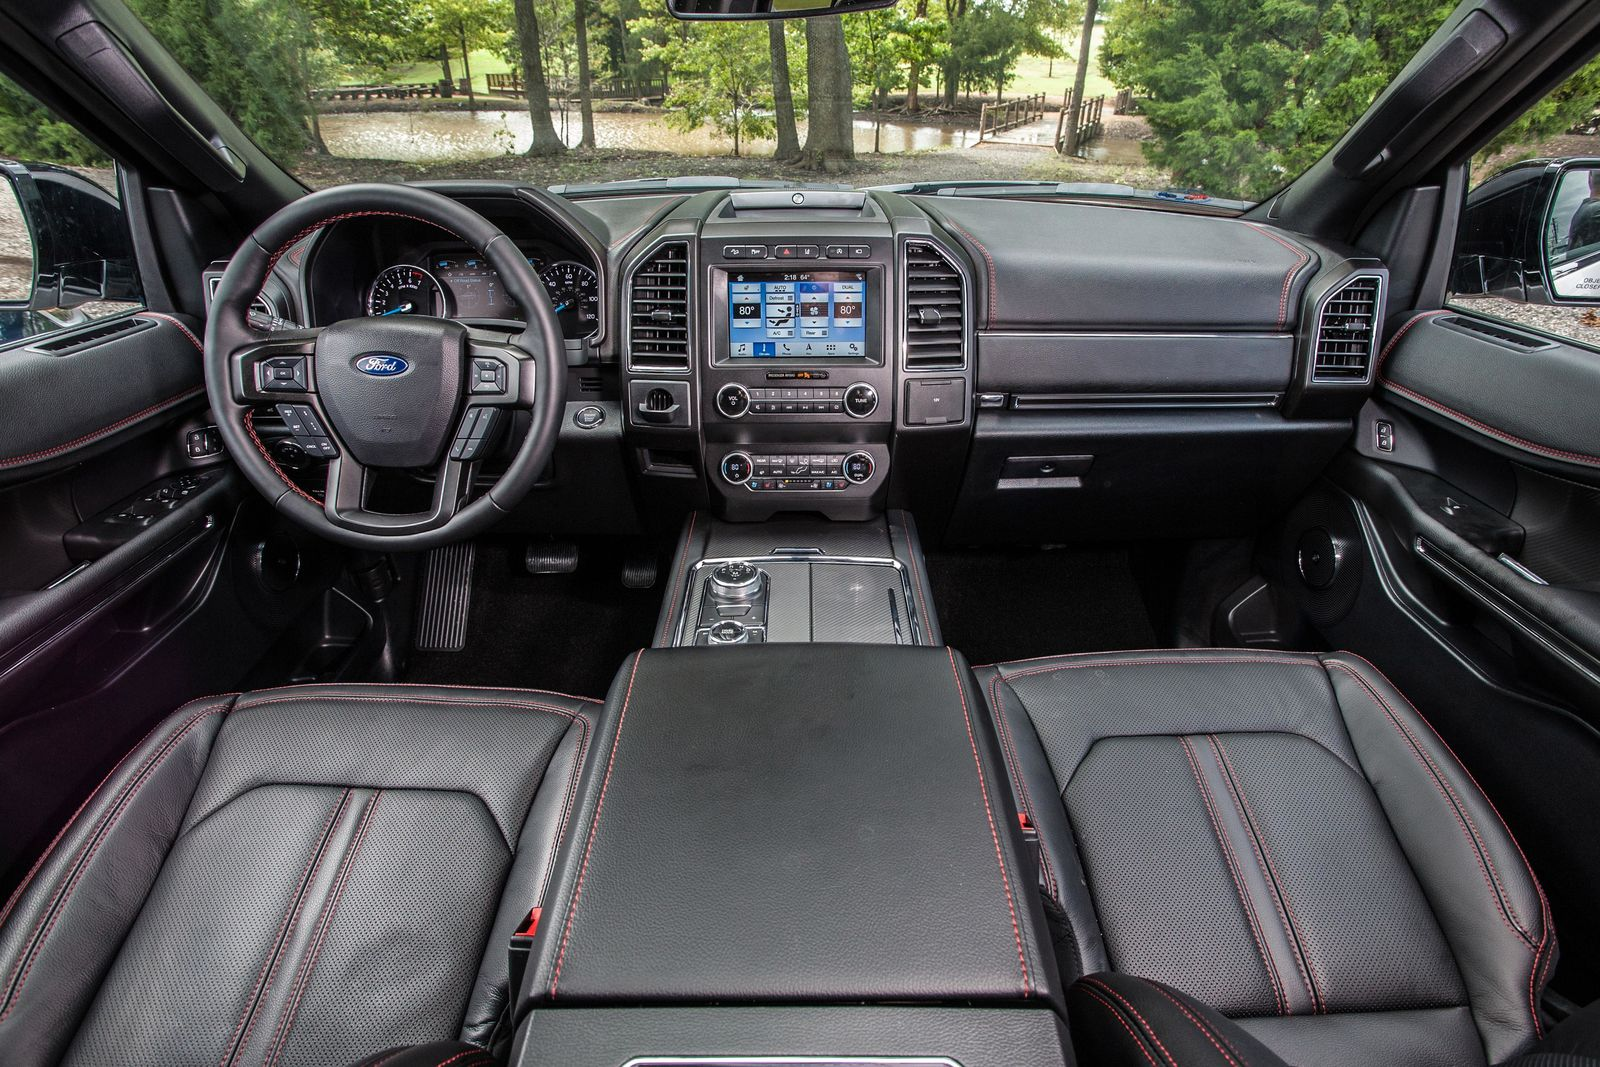 2019 Ford Expedition Stealth Edition Interior{ }(Photo: Ford)